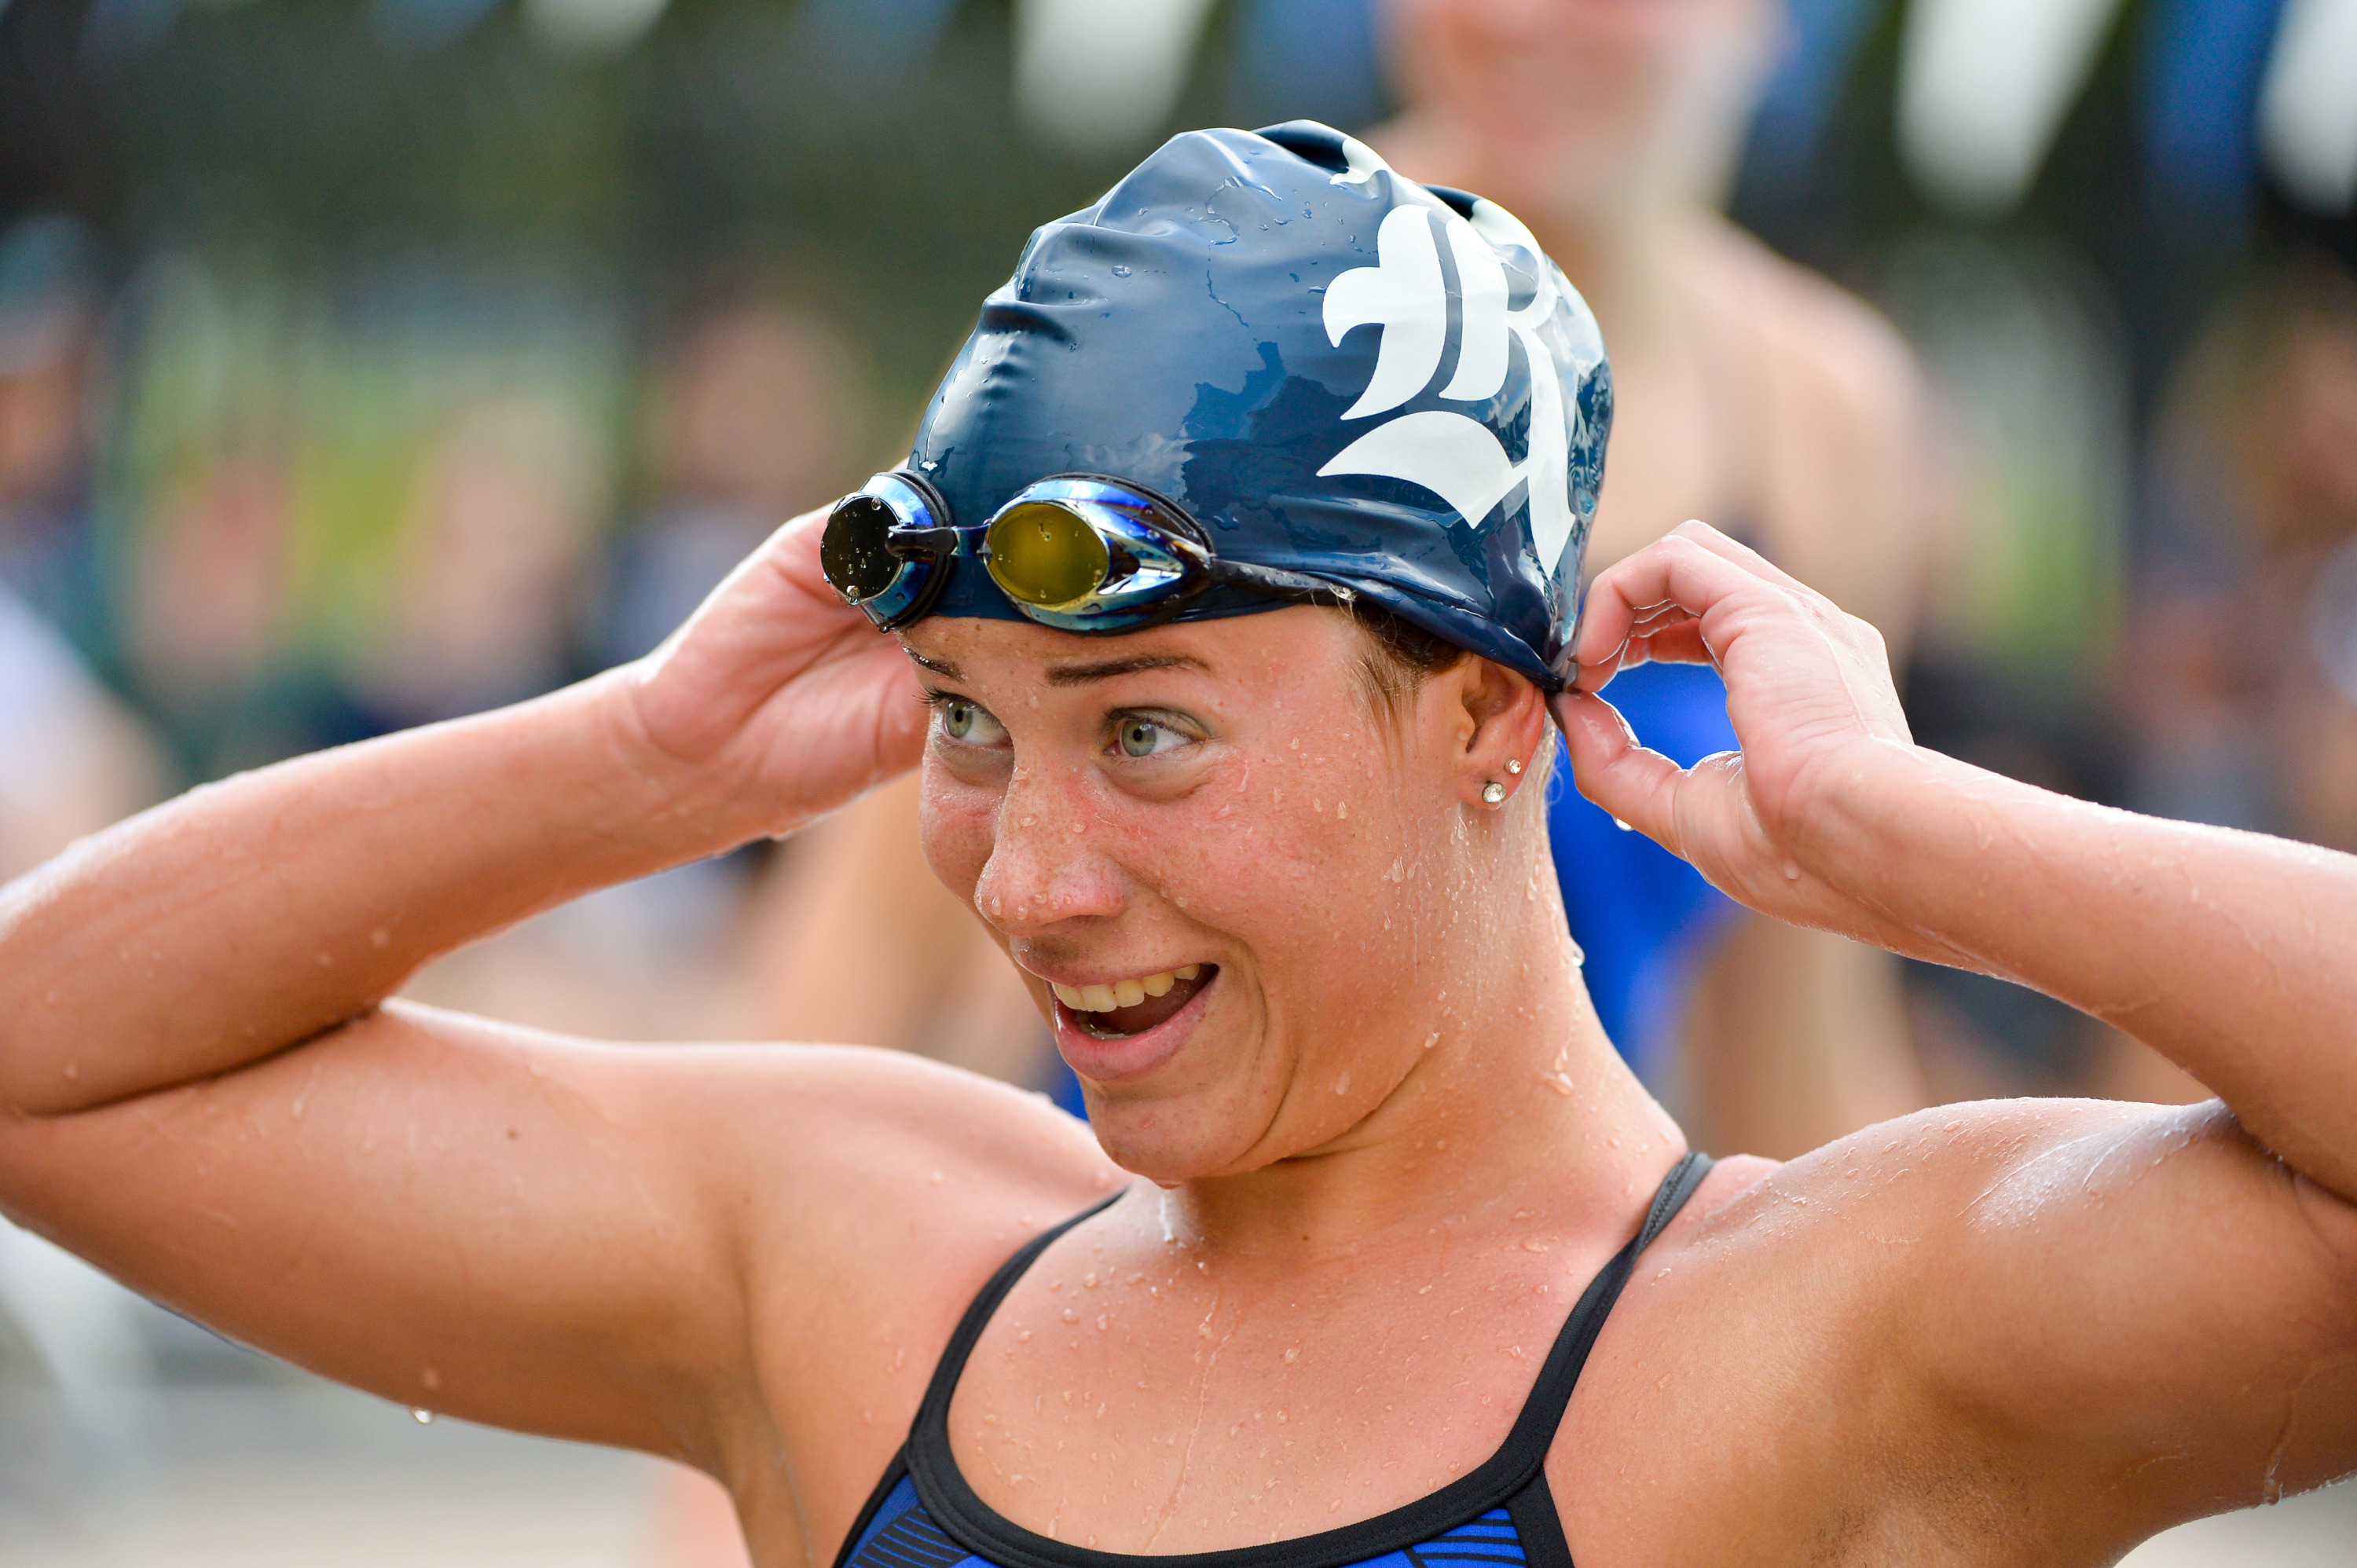 Schillinger Named C-USA Swimmer of the Week - Rice University Athletics d40c8a4065